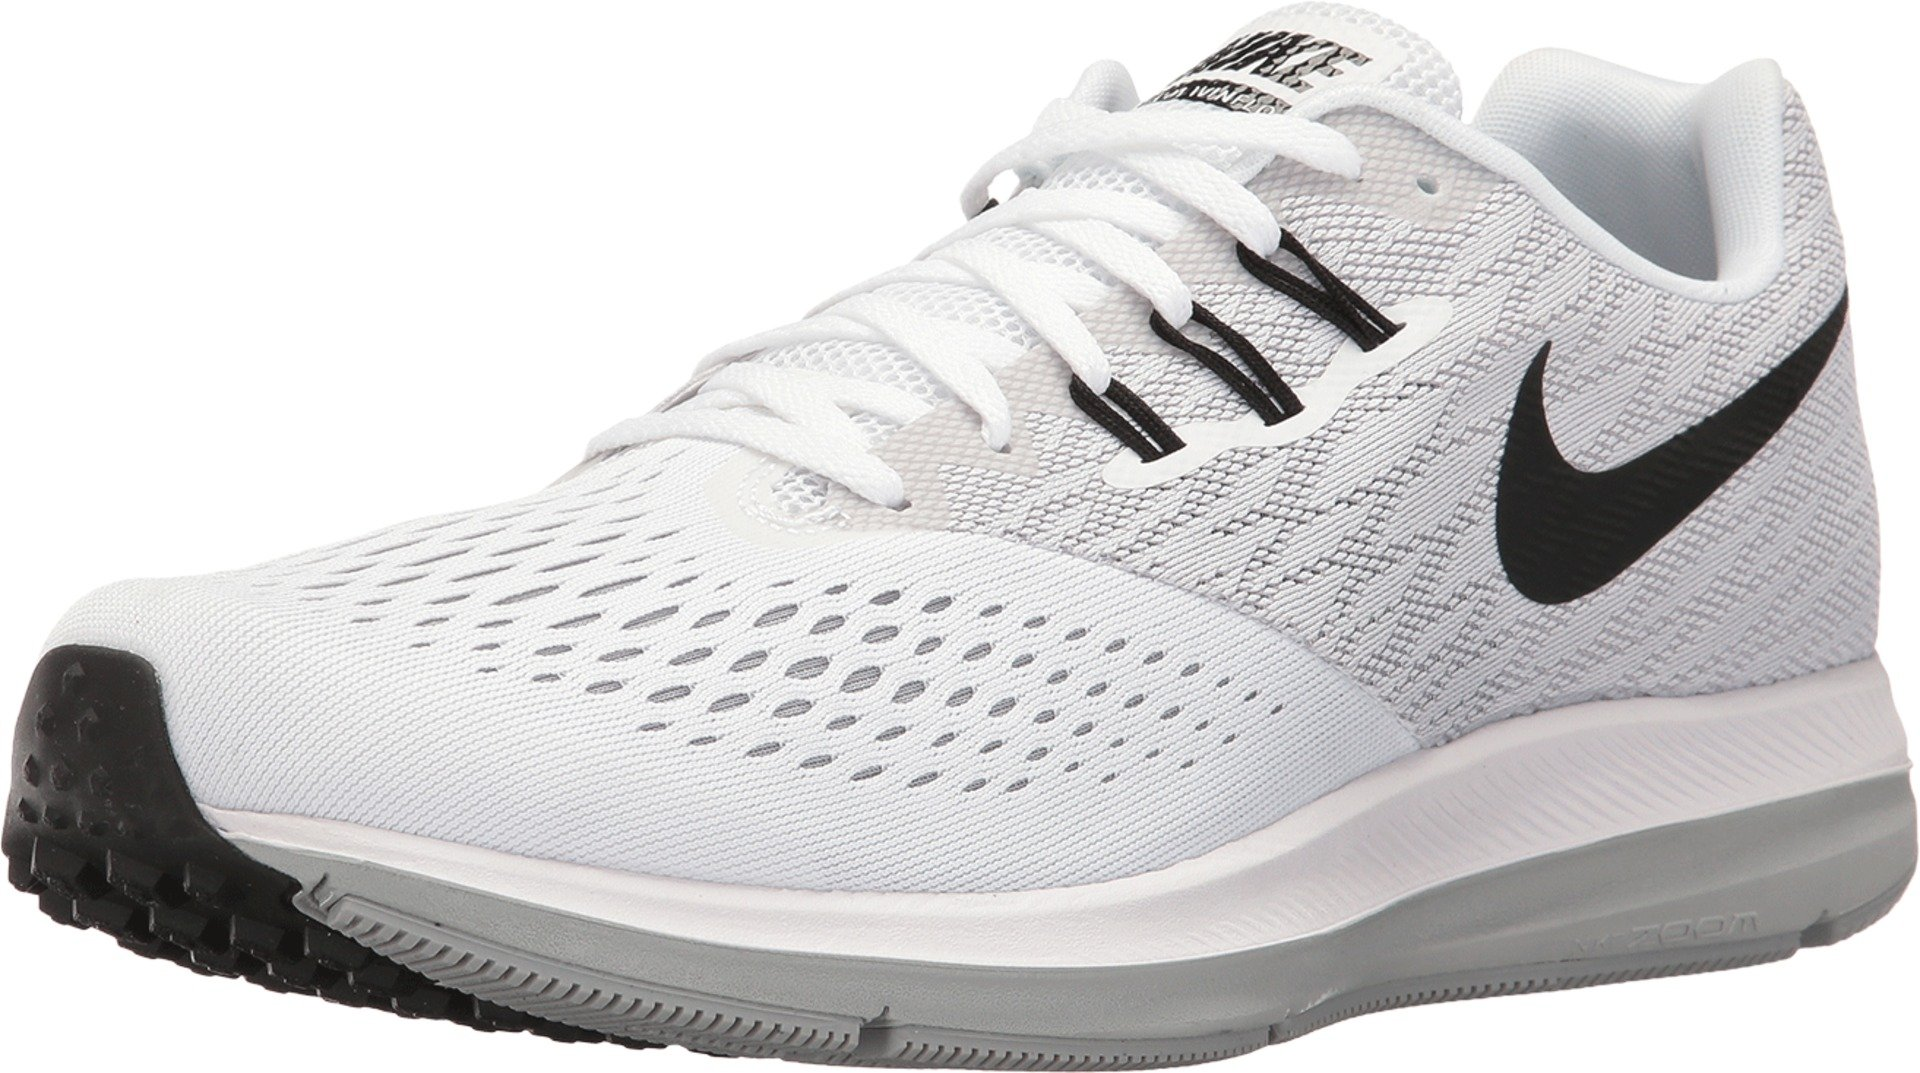 newest 1e93a 66e04 Nike Men's Air Zoom Winflo 4 Running Shoe, White/Black/Wolf Grey 8